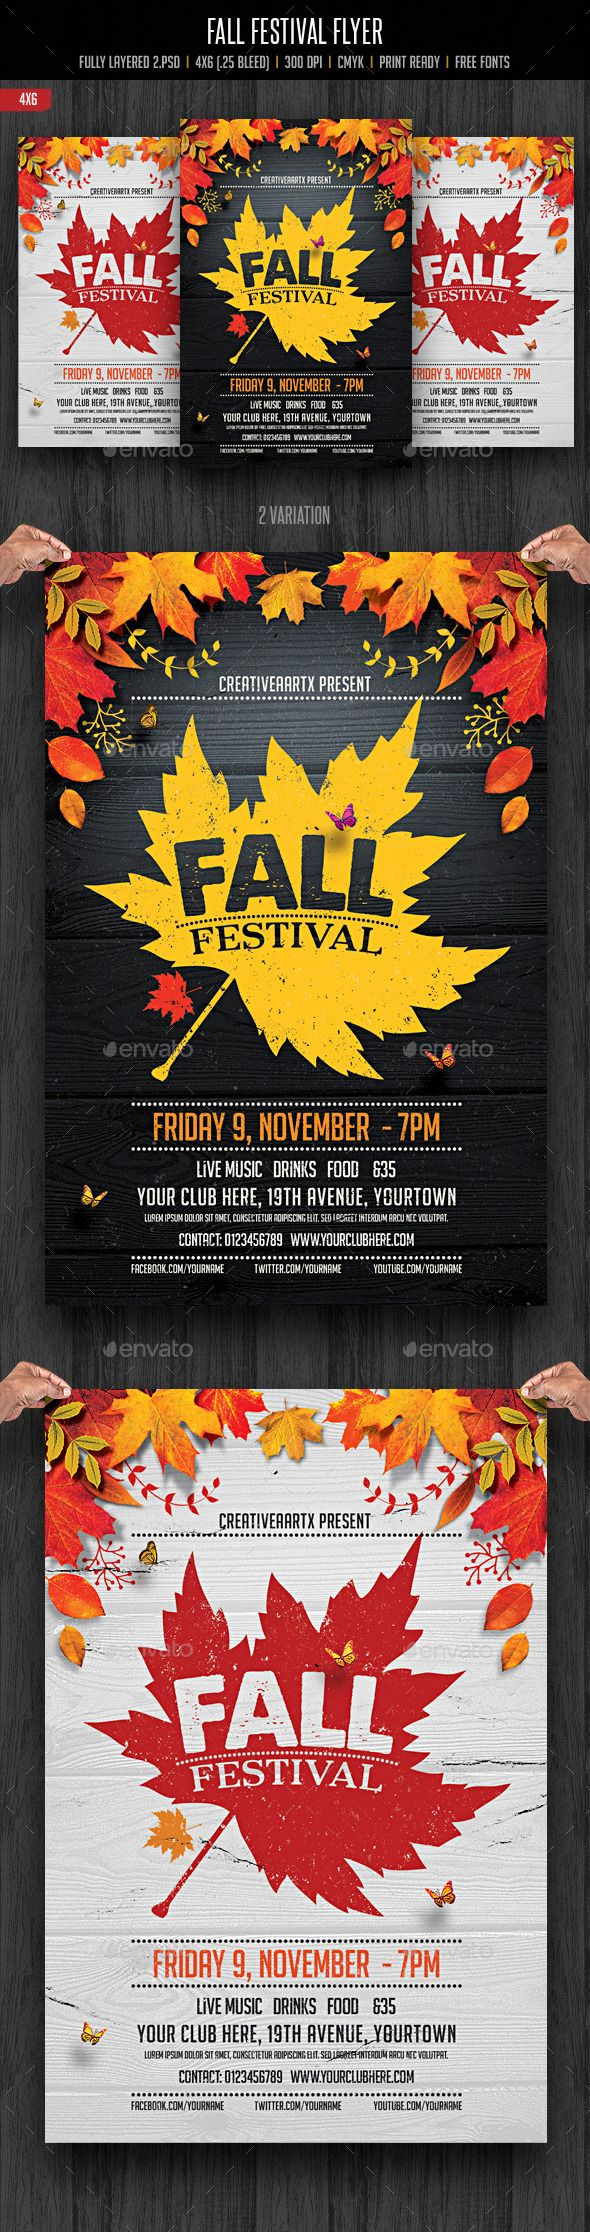 Poster design download - Fall Festival Flyer Festival Downloadposter Ideasposter Designsevent